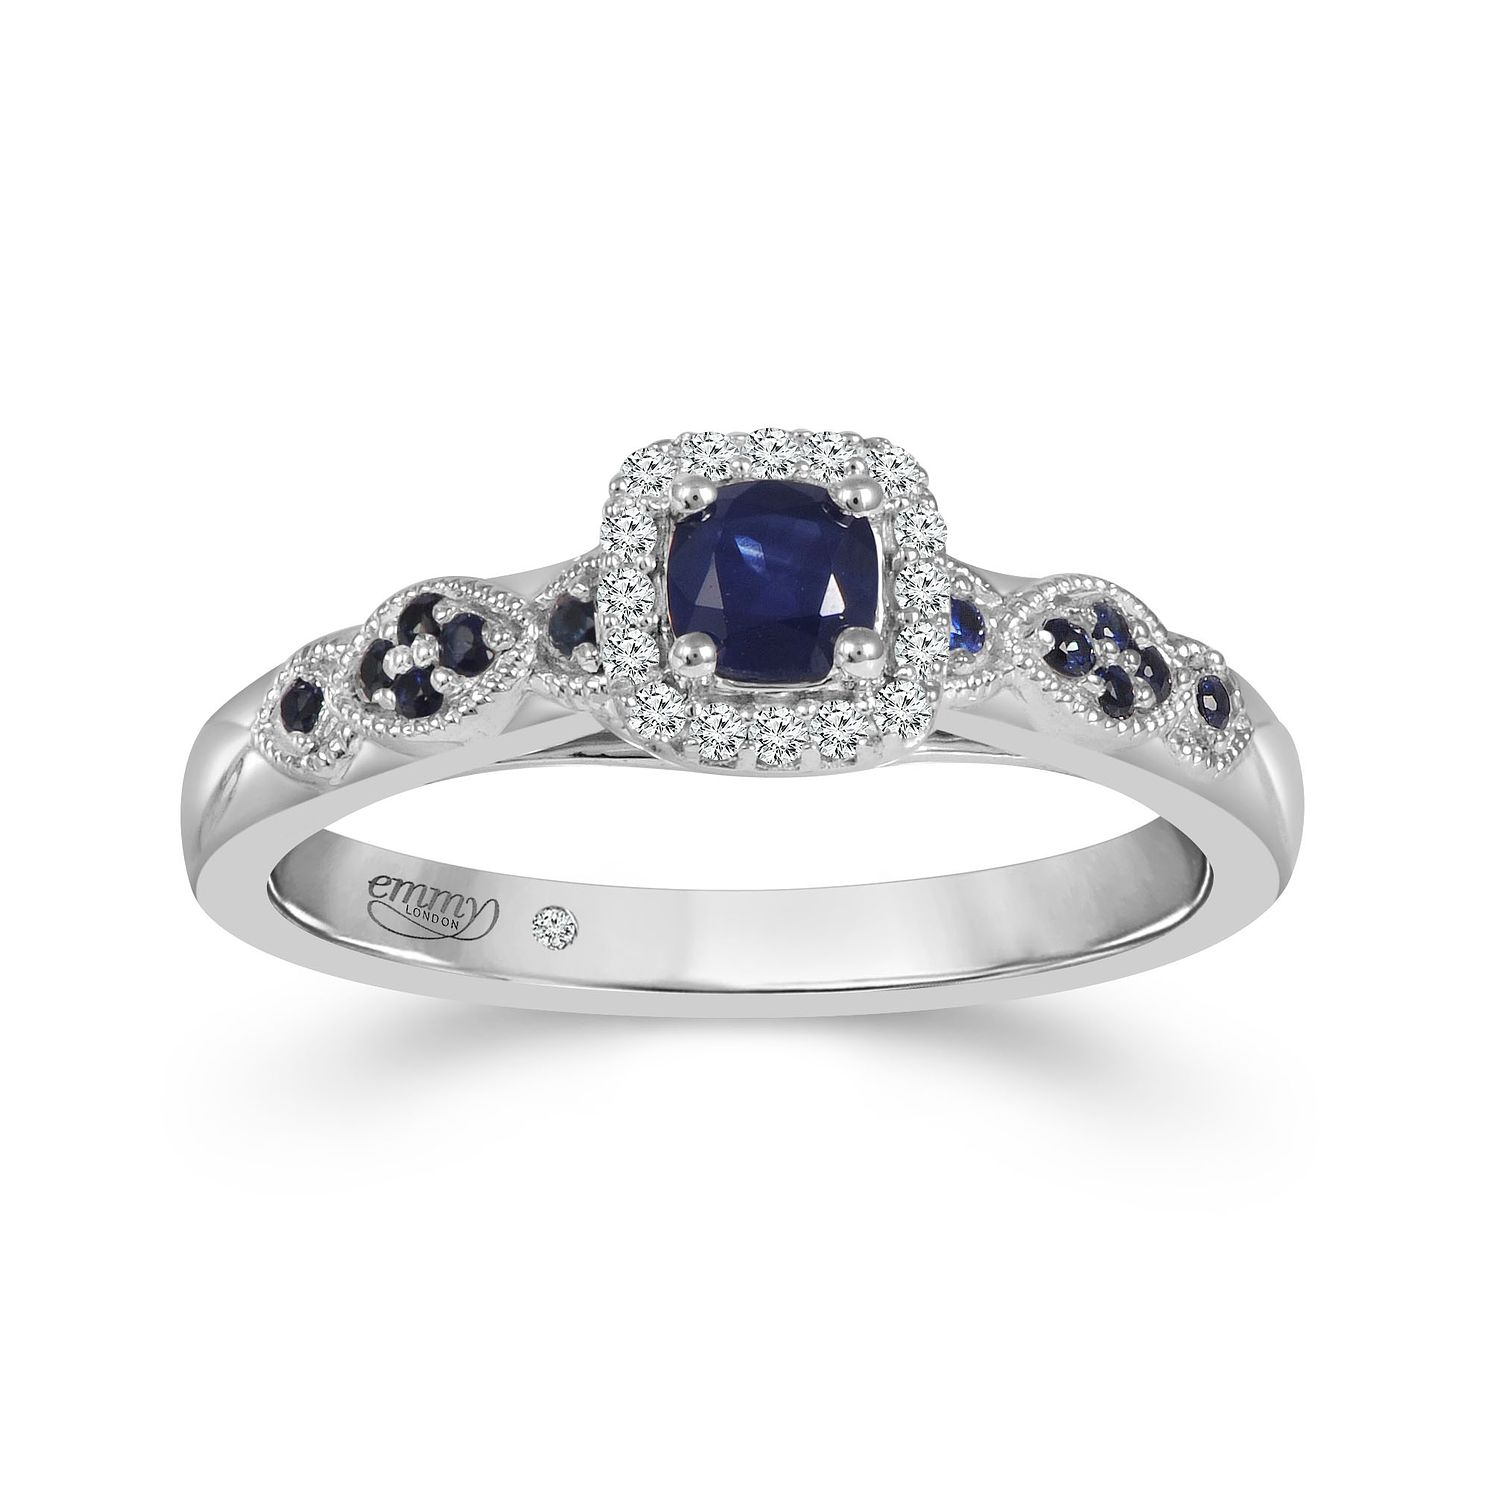 Emmy London 18ct White Gold Sapphire Diamond Ring - Product number 9531424